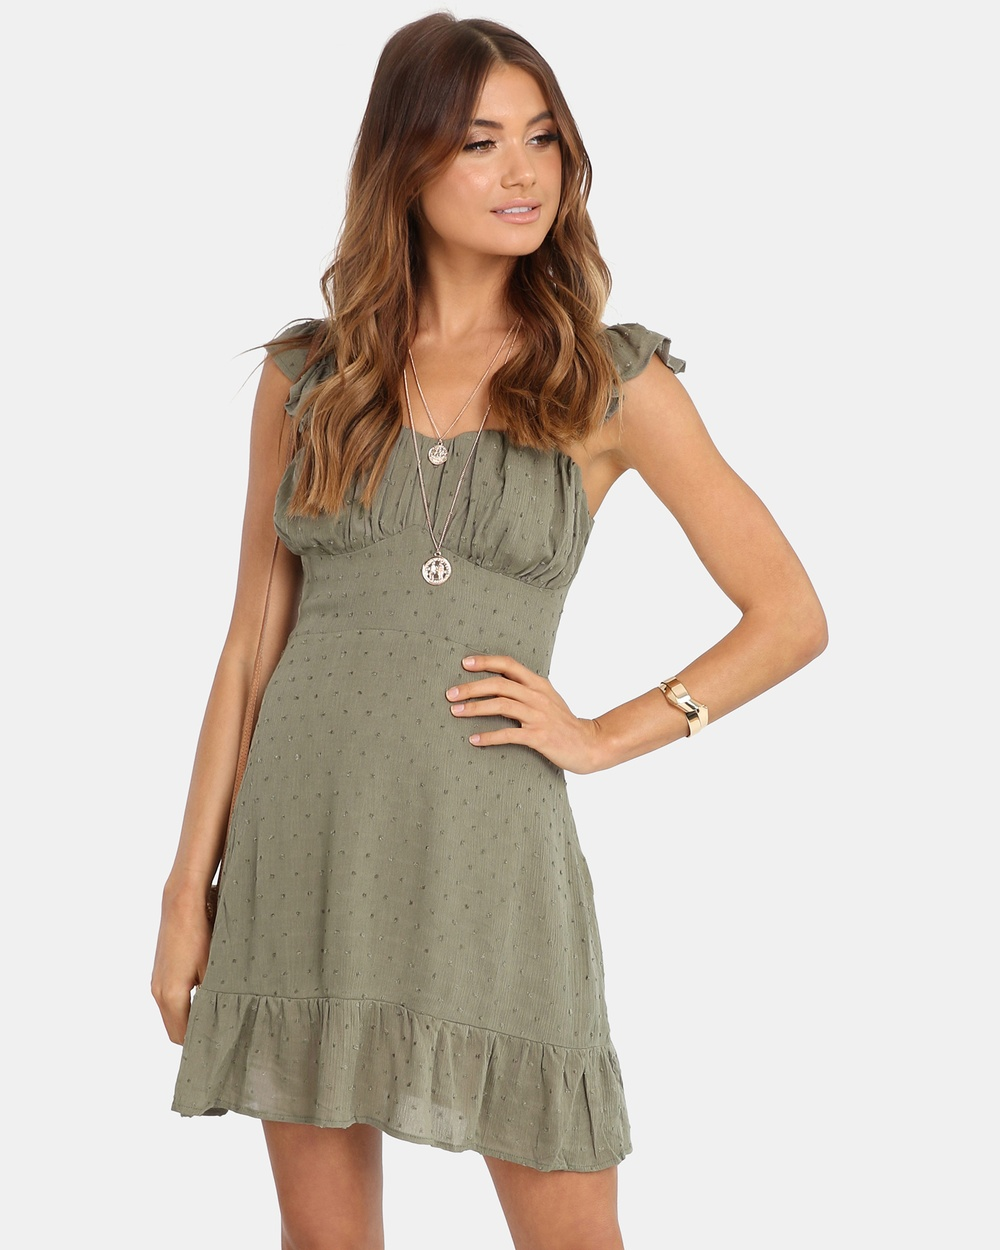 Lost in Lunar Khaki Skyler Dress